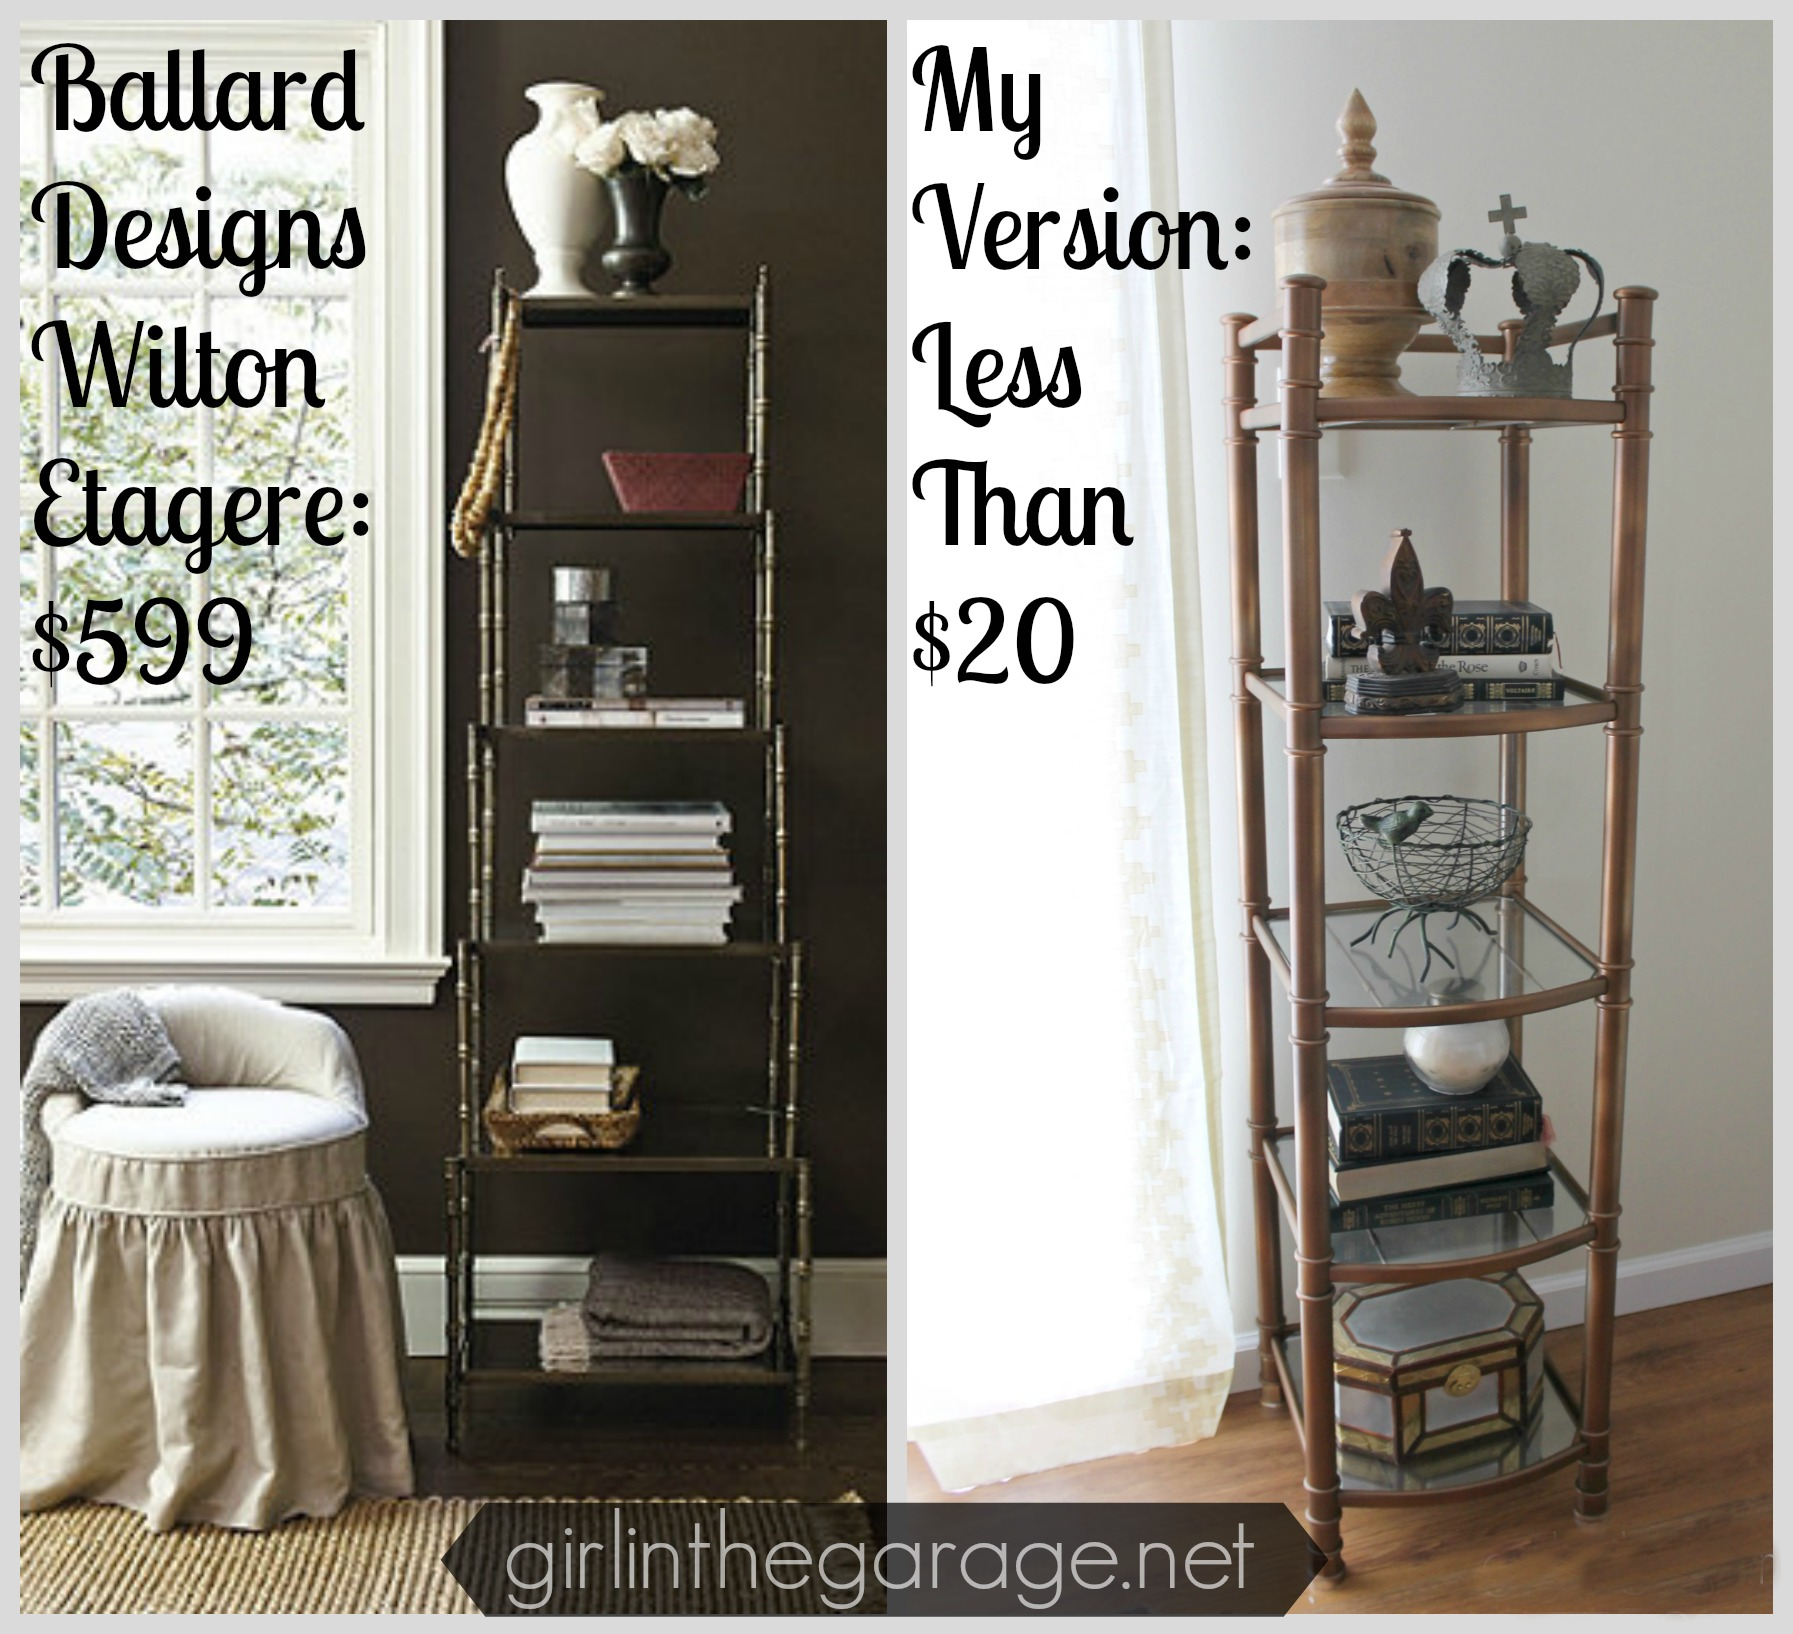 Ballard Designs Inspired Tower Makeover {Rock Your Knockoff Tour}  Girlinthegarage.net